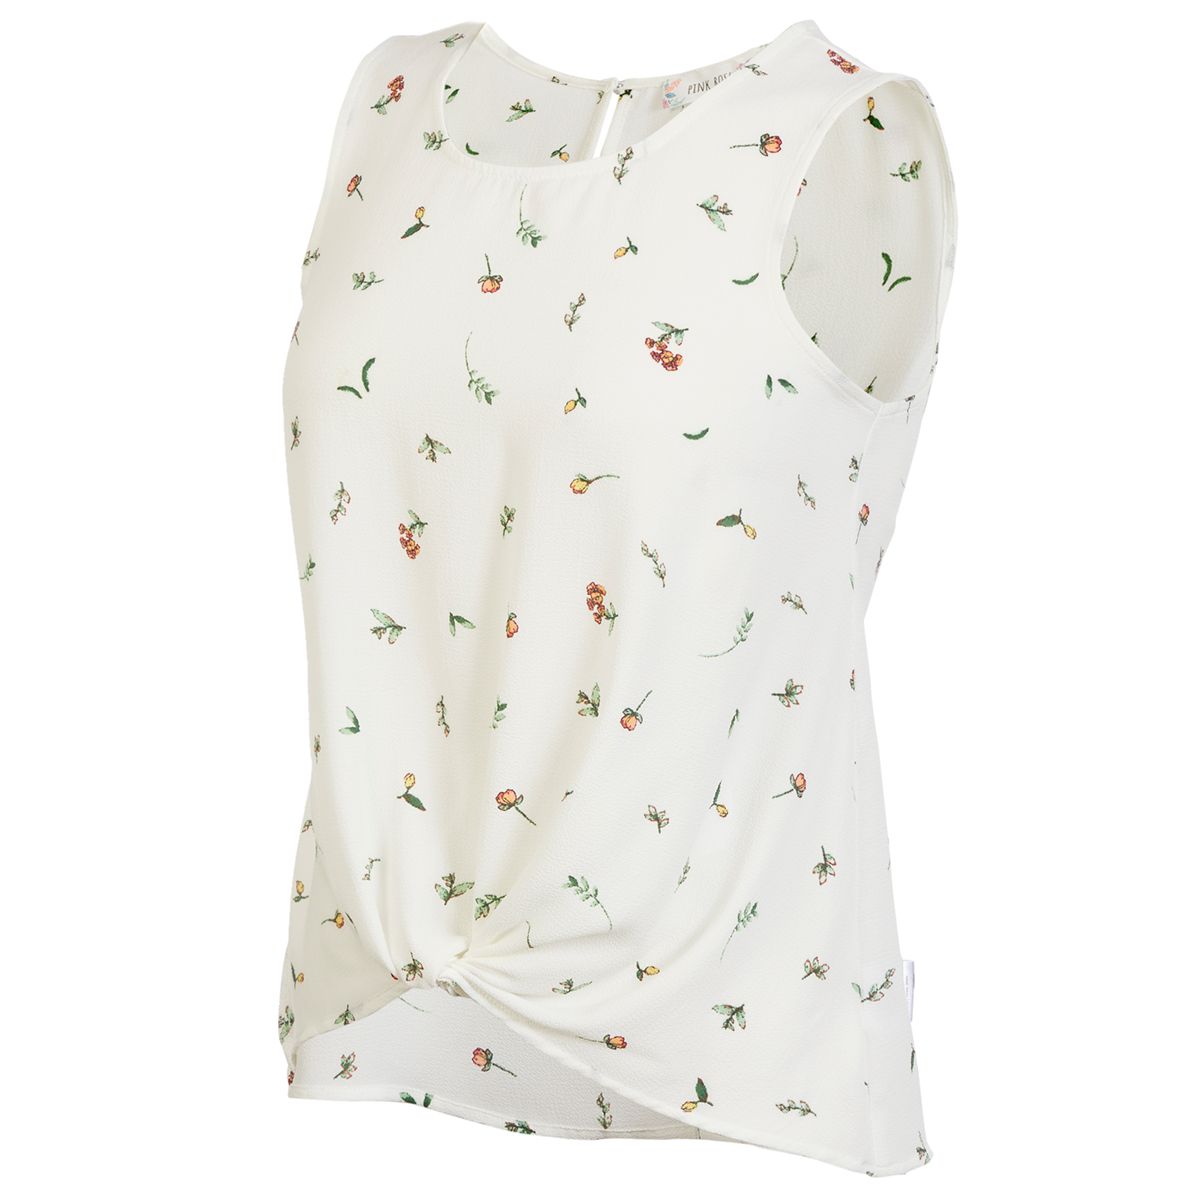 Pink Rose Juniors' Button Front Sleeveless Top - White, S